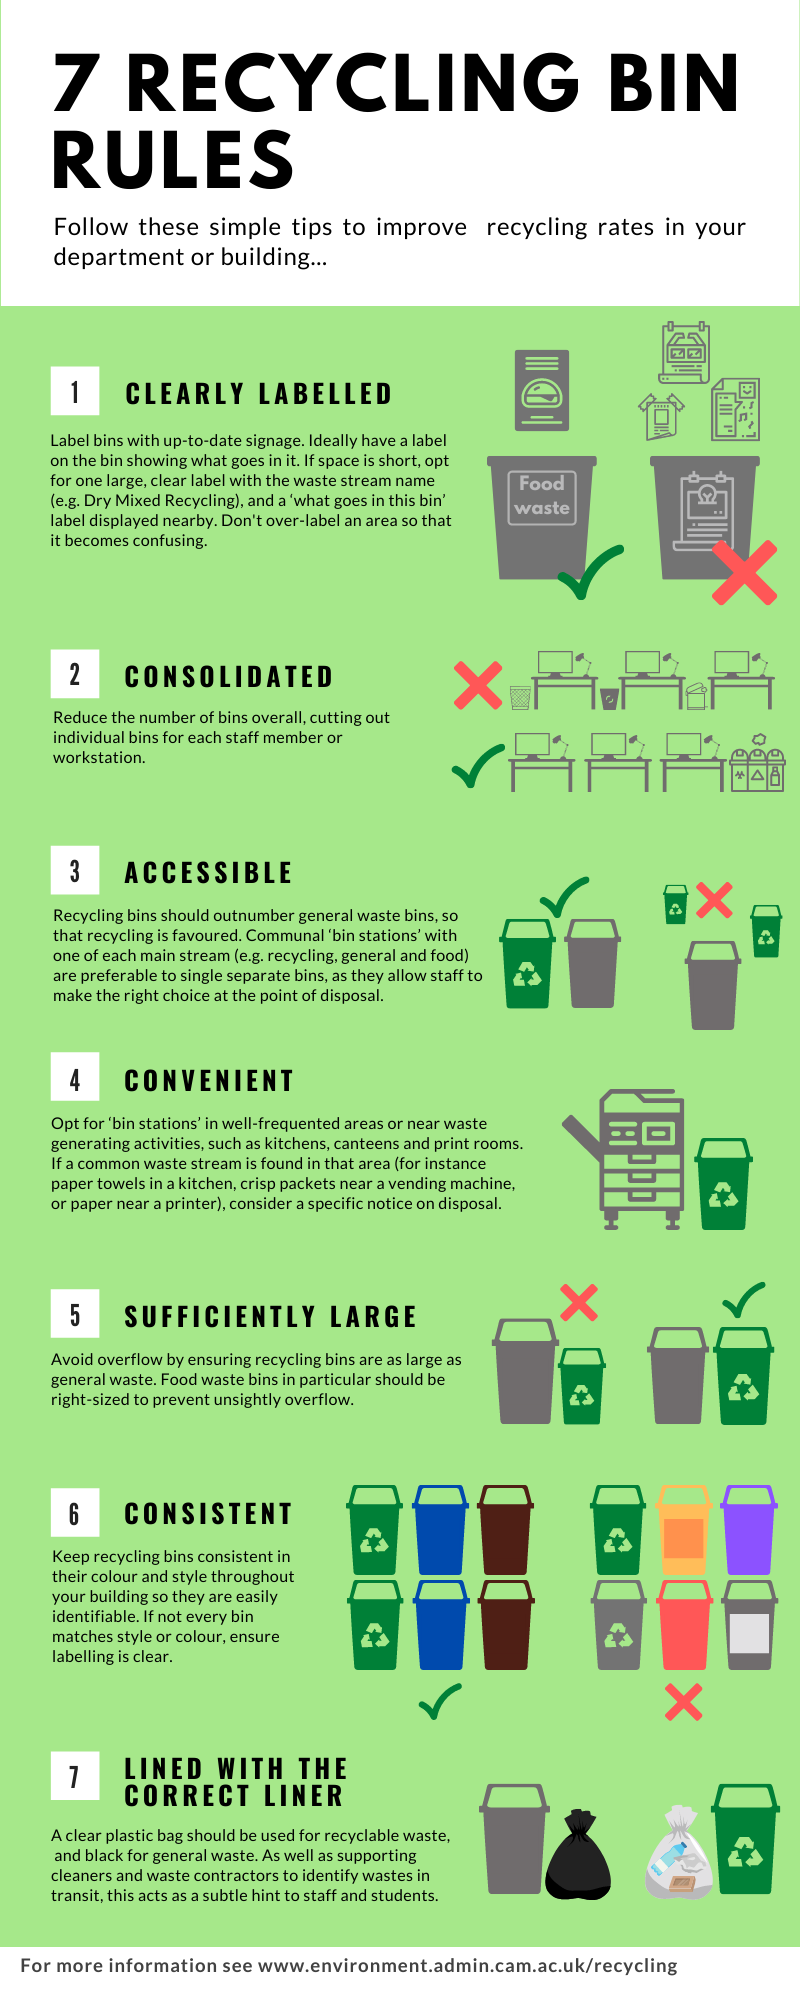 7 rules for recycling